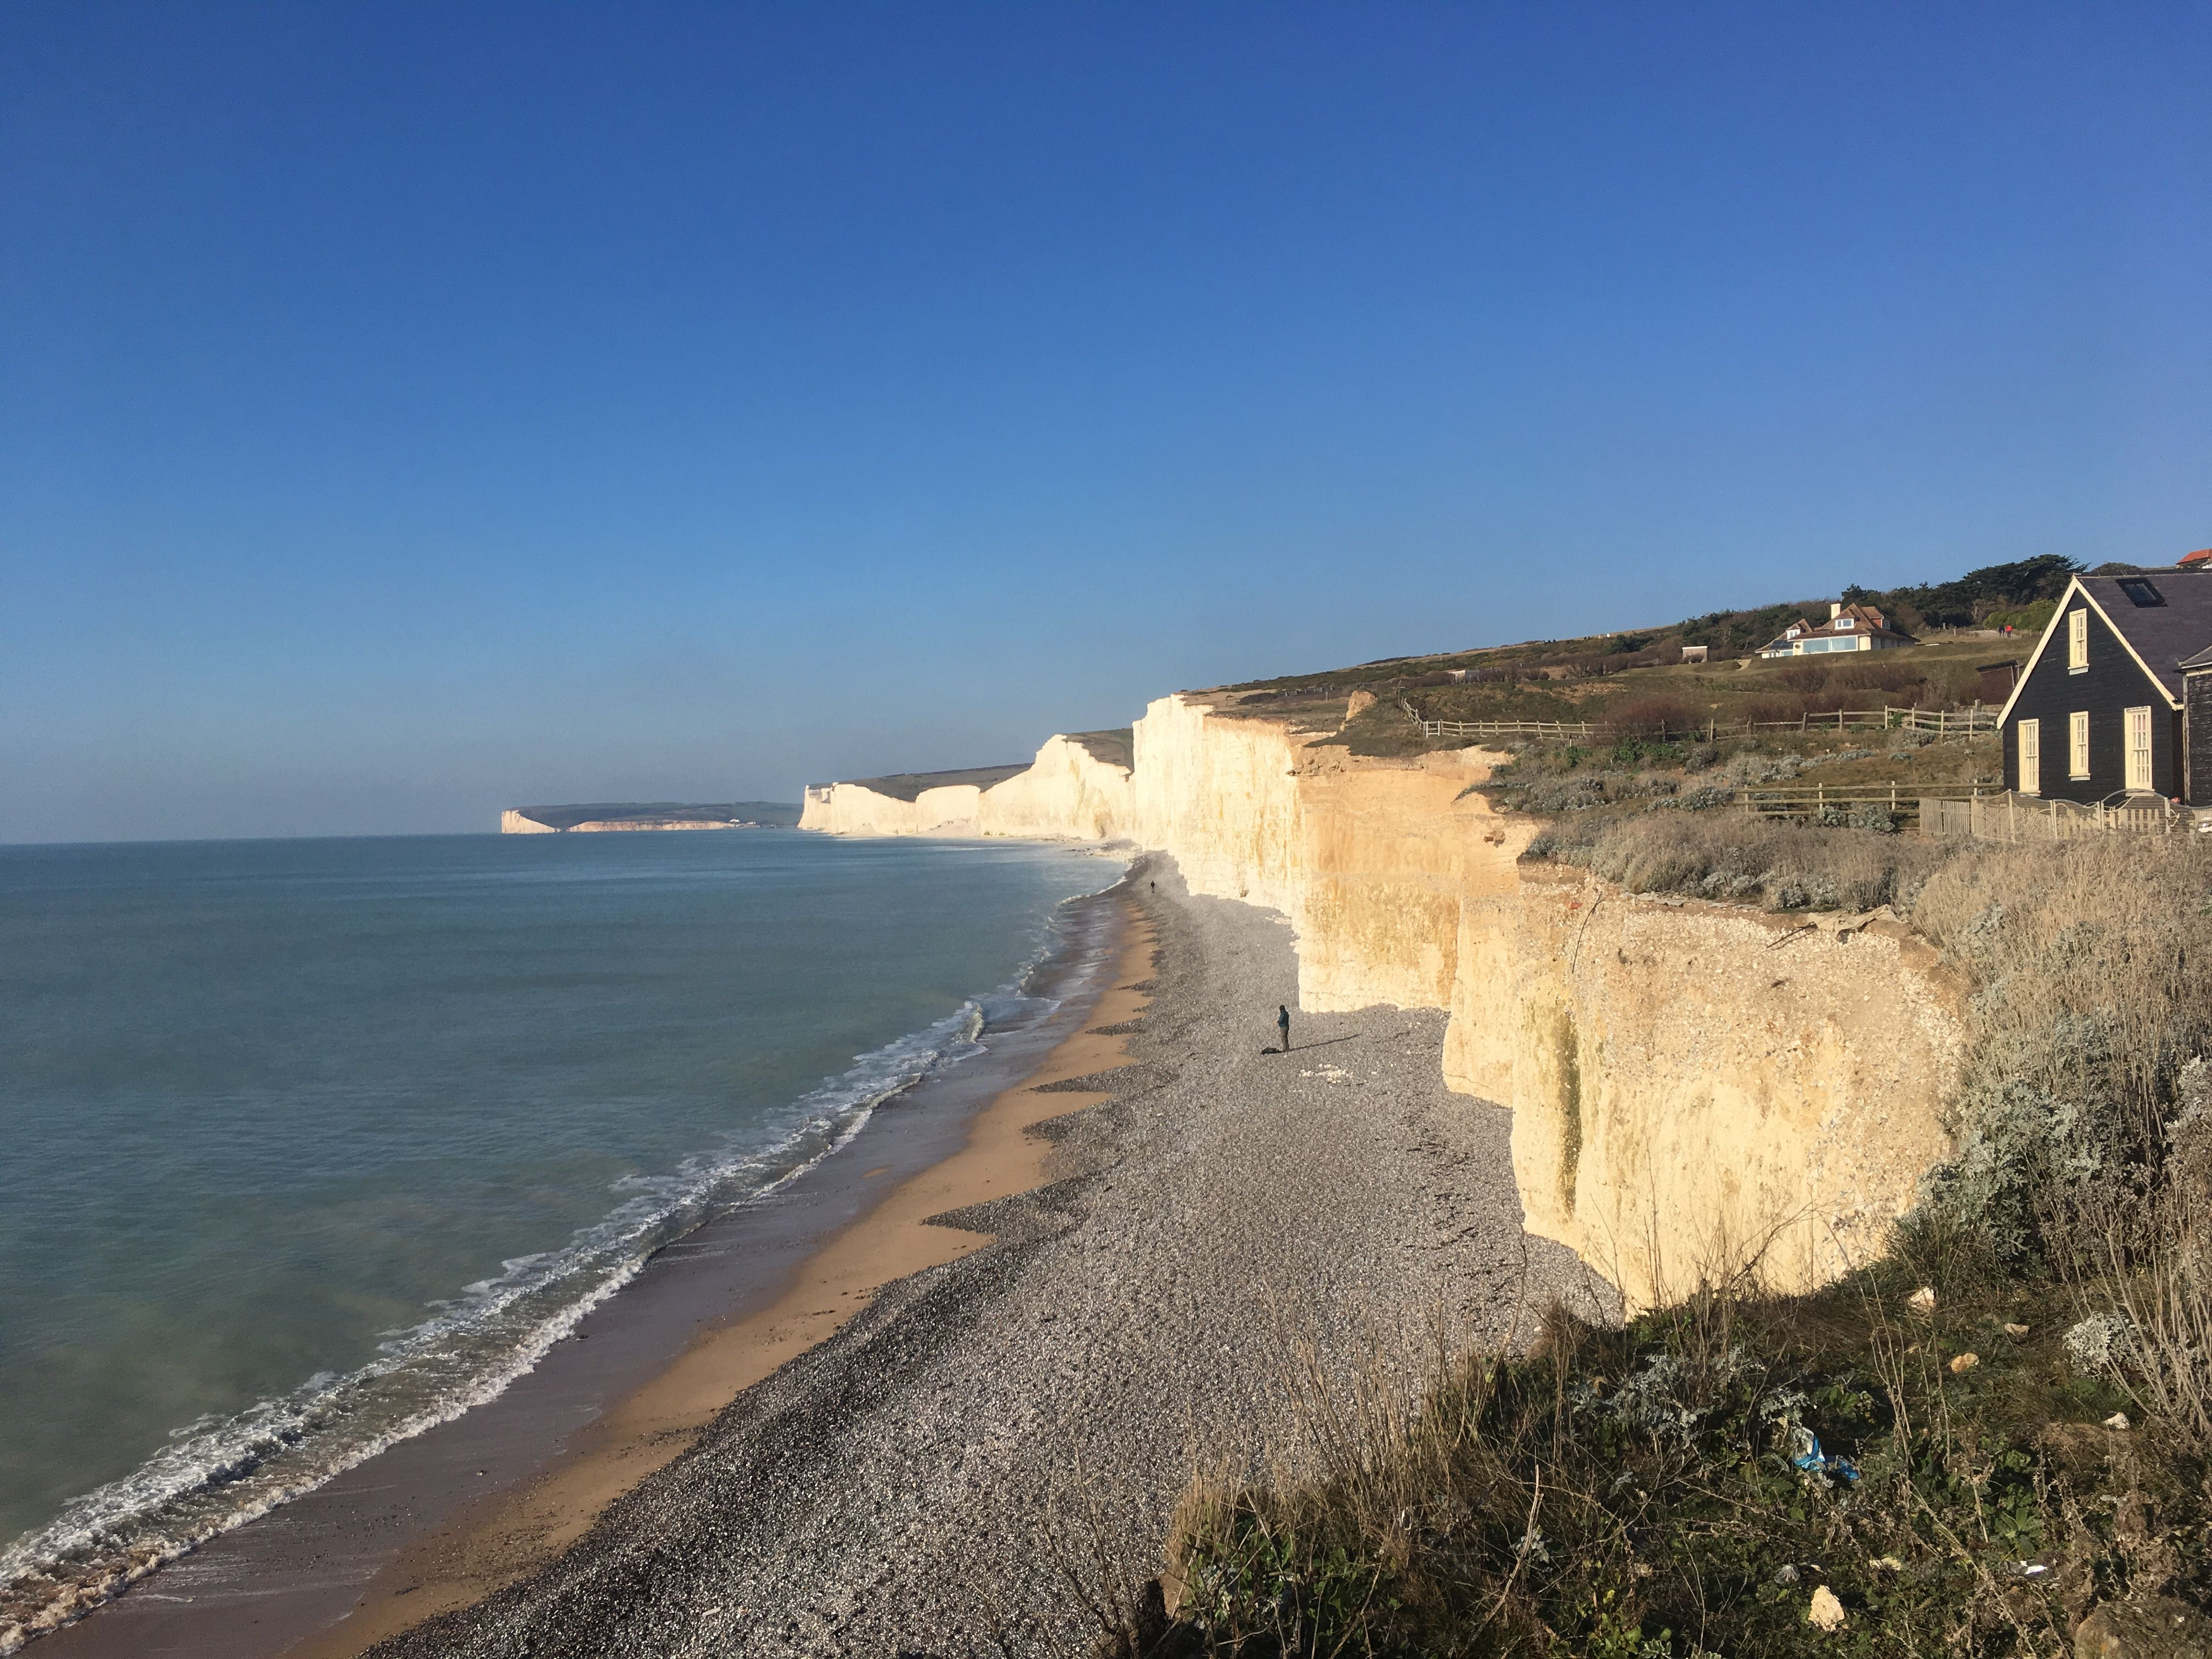 DRY JANUARY: THE TURNING POINT – Urbs and burbs   It takes three weeks to create a habit but is that really true? Plus other Dry January distractions like the beautiful cliffs on the UK south coast   #dryjan #dryjanuary #sobercurious #alcoholfree #dryjanuary2019 #ukholidays #ukcoast #coastalwalks #eastbourne